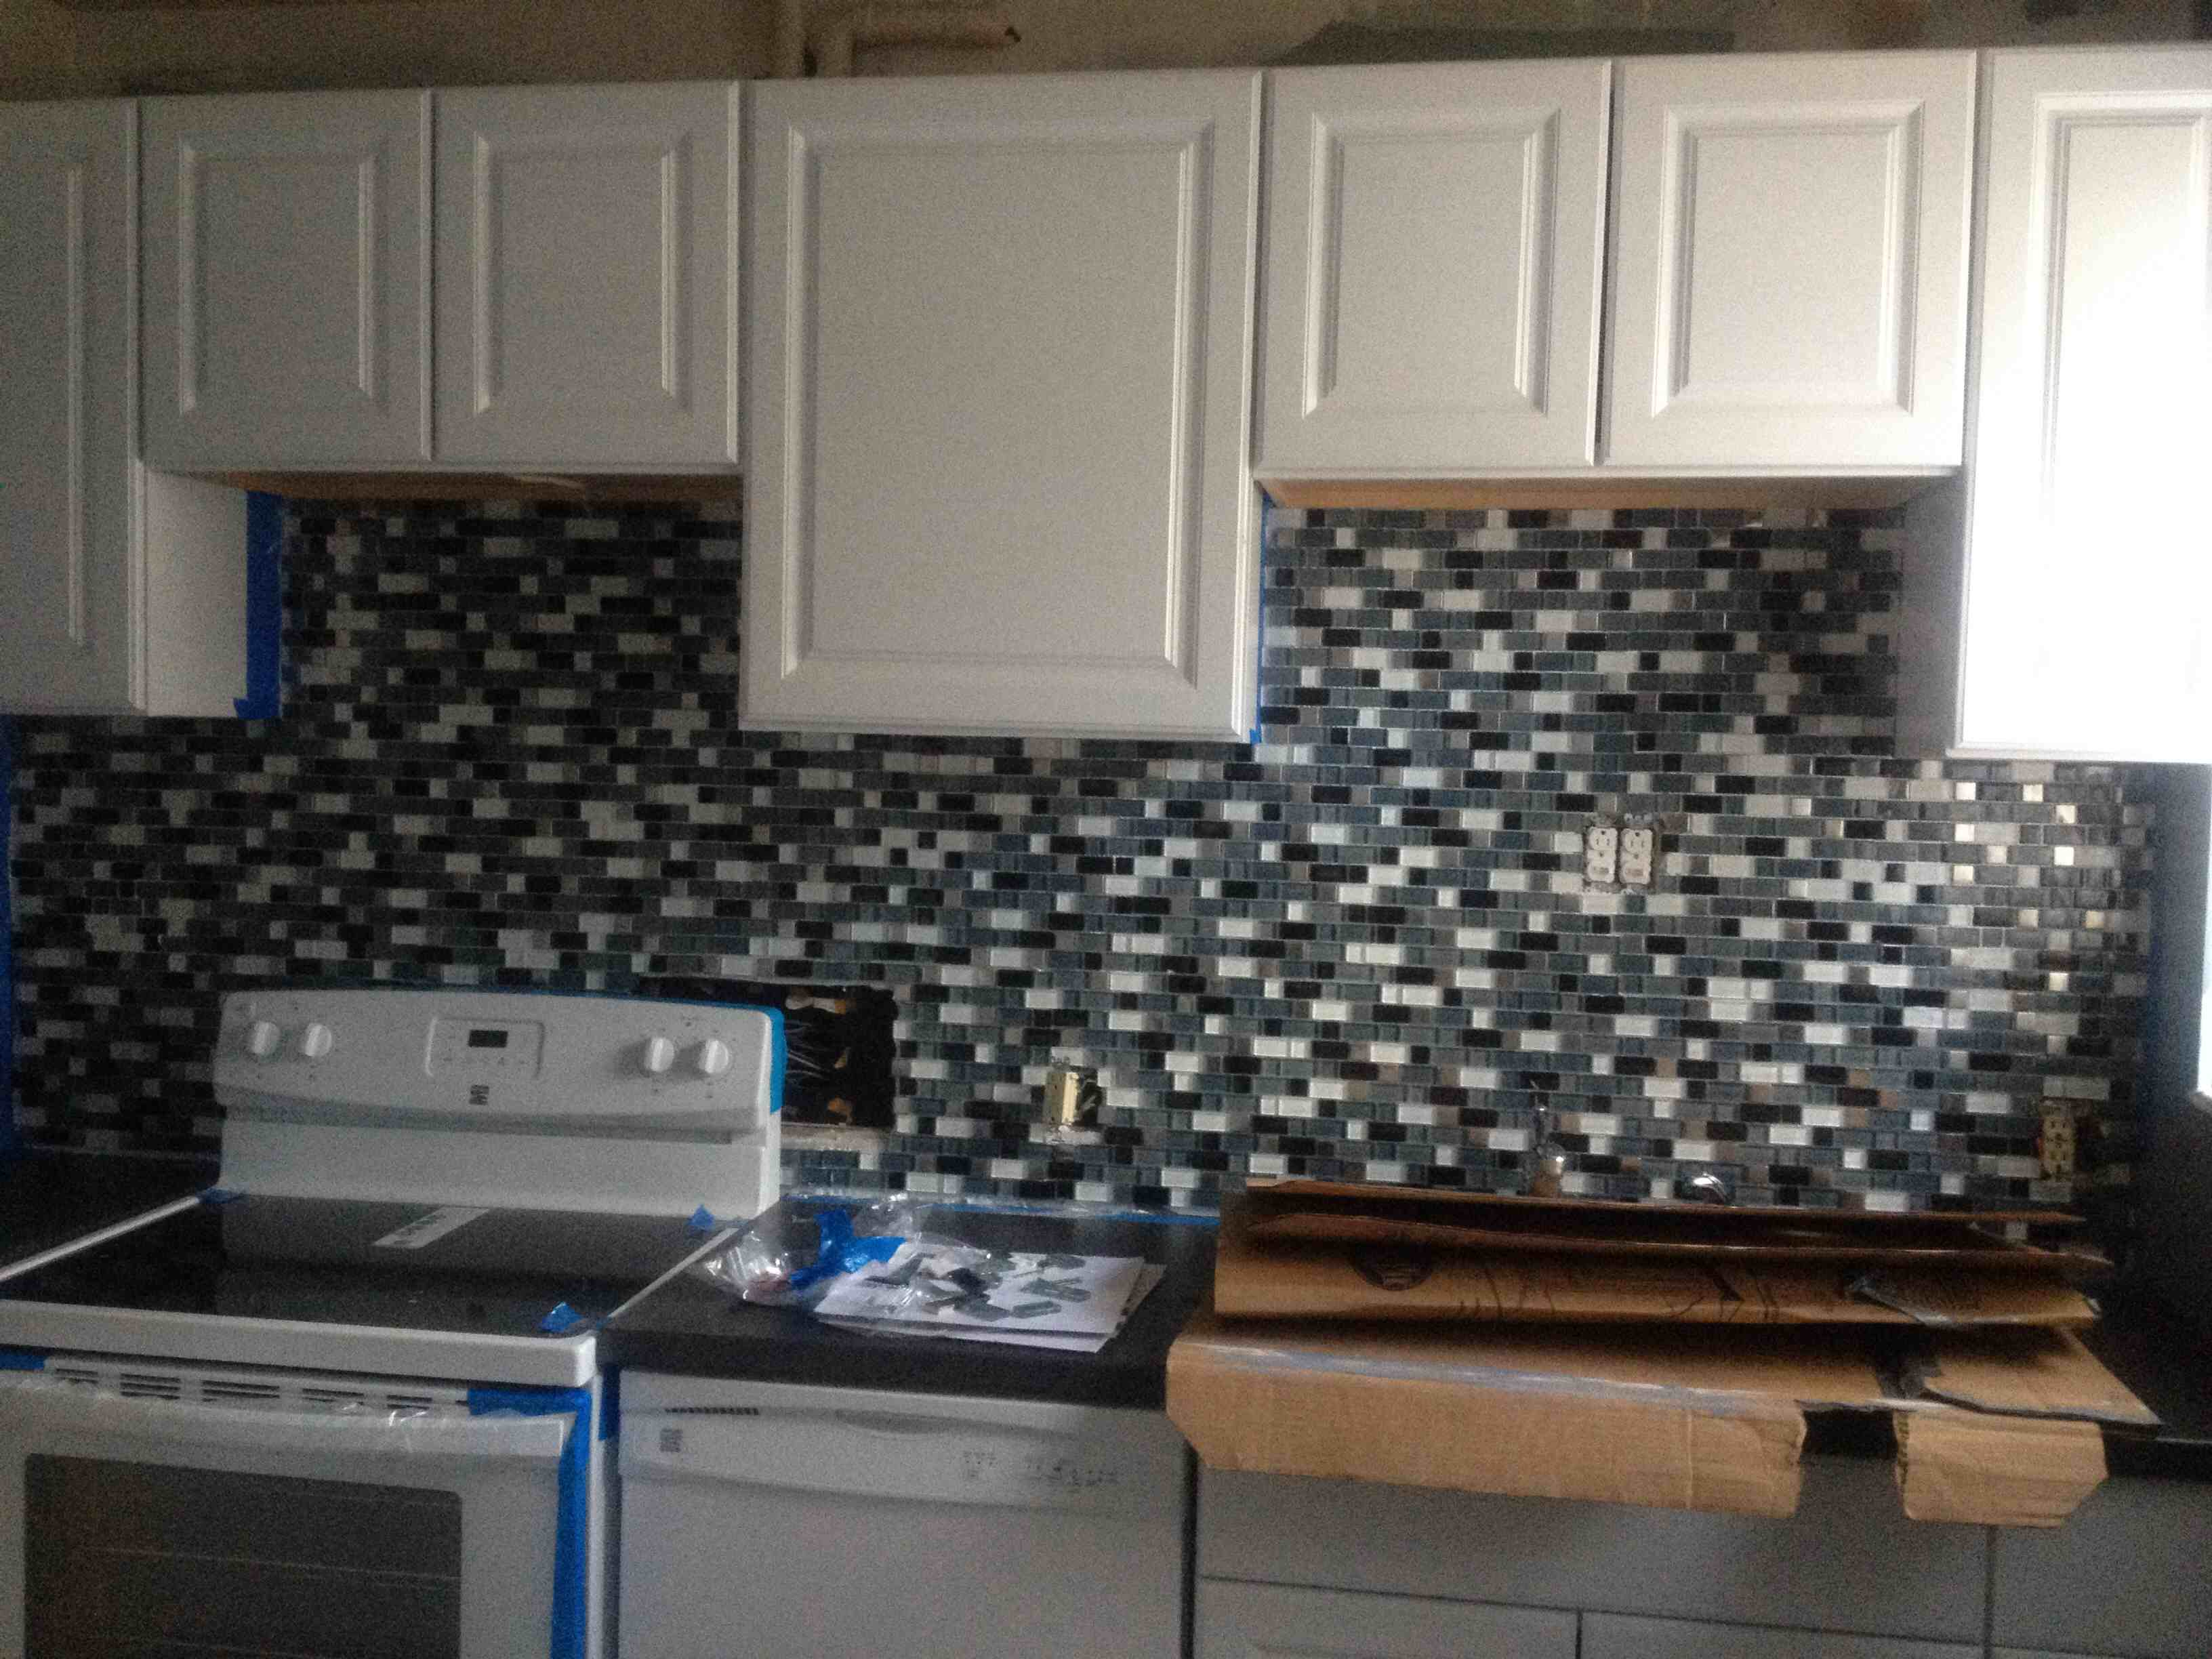 new cabinets and backsplash